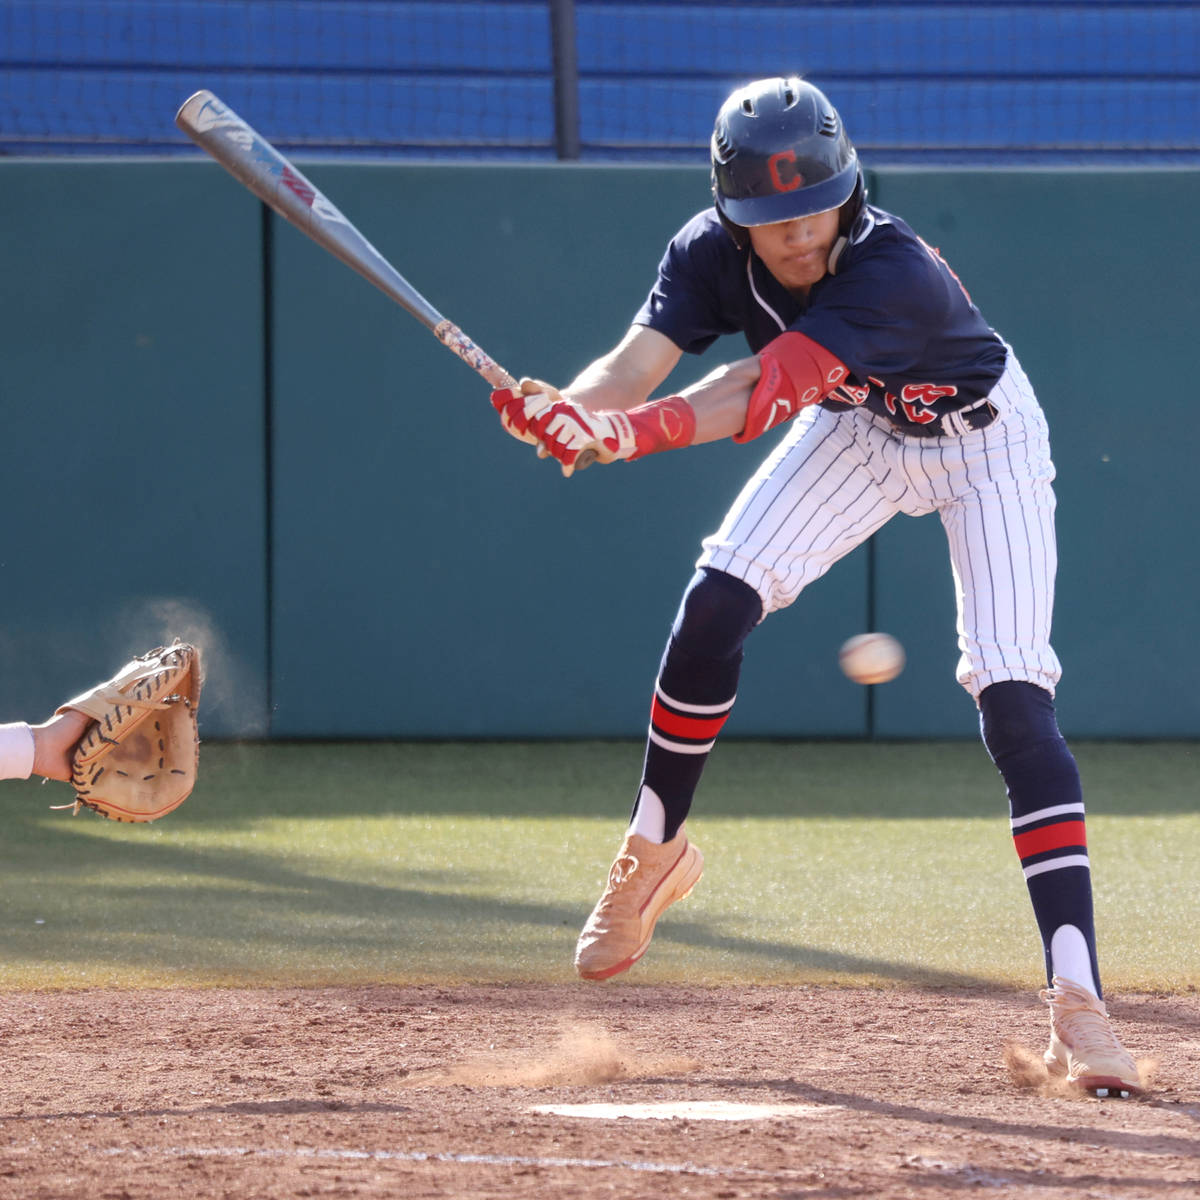 Coronado's Mason McCormack (28) moves away from a pitch against Bishop Gorman in the fifth inni ...